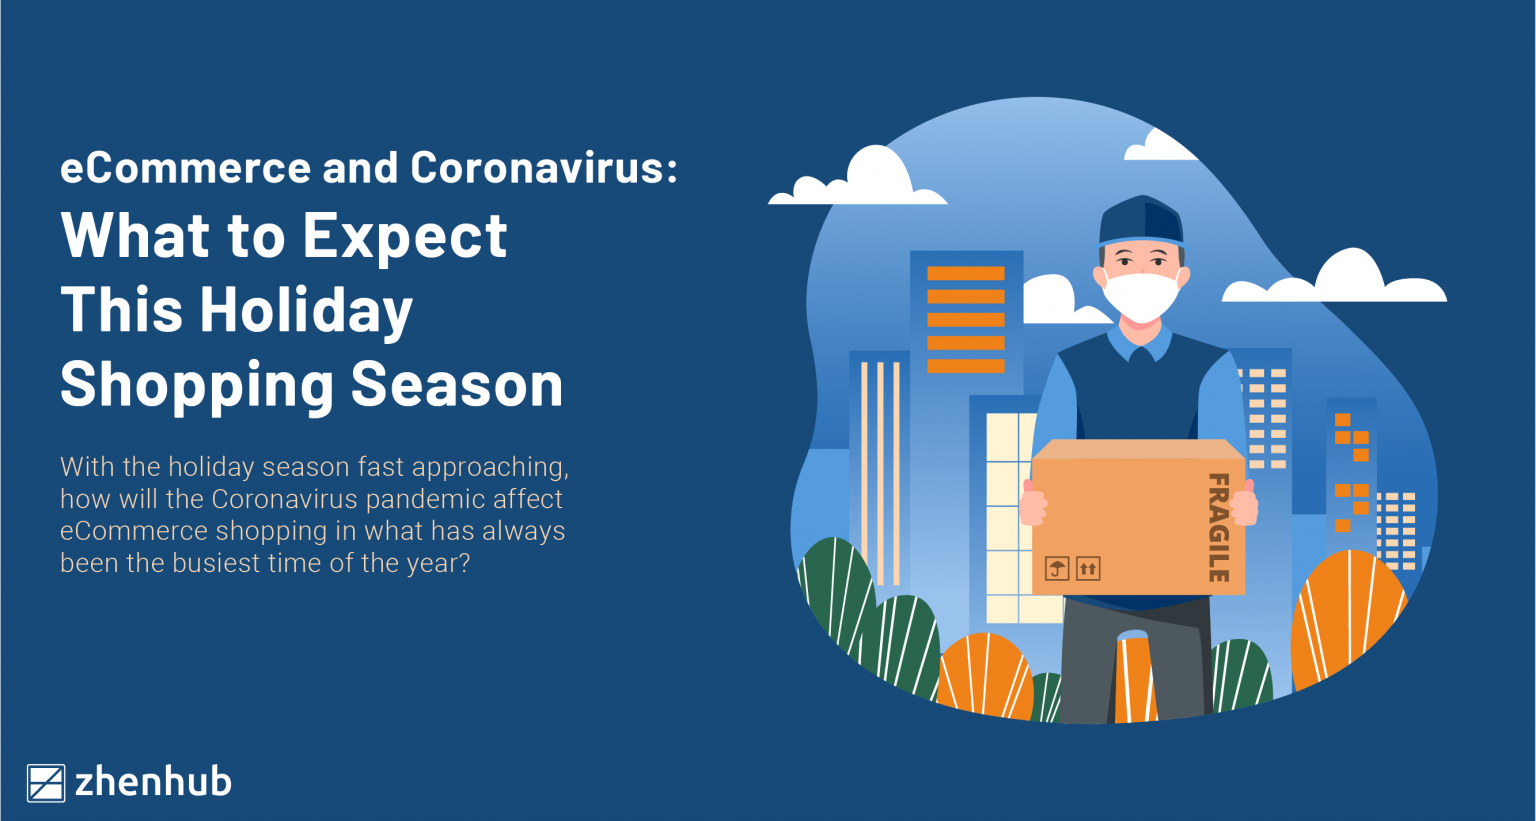 eCommerce and Coronavirus: What to Expect This Holiday Shopping Season